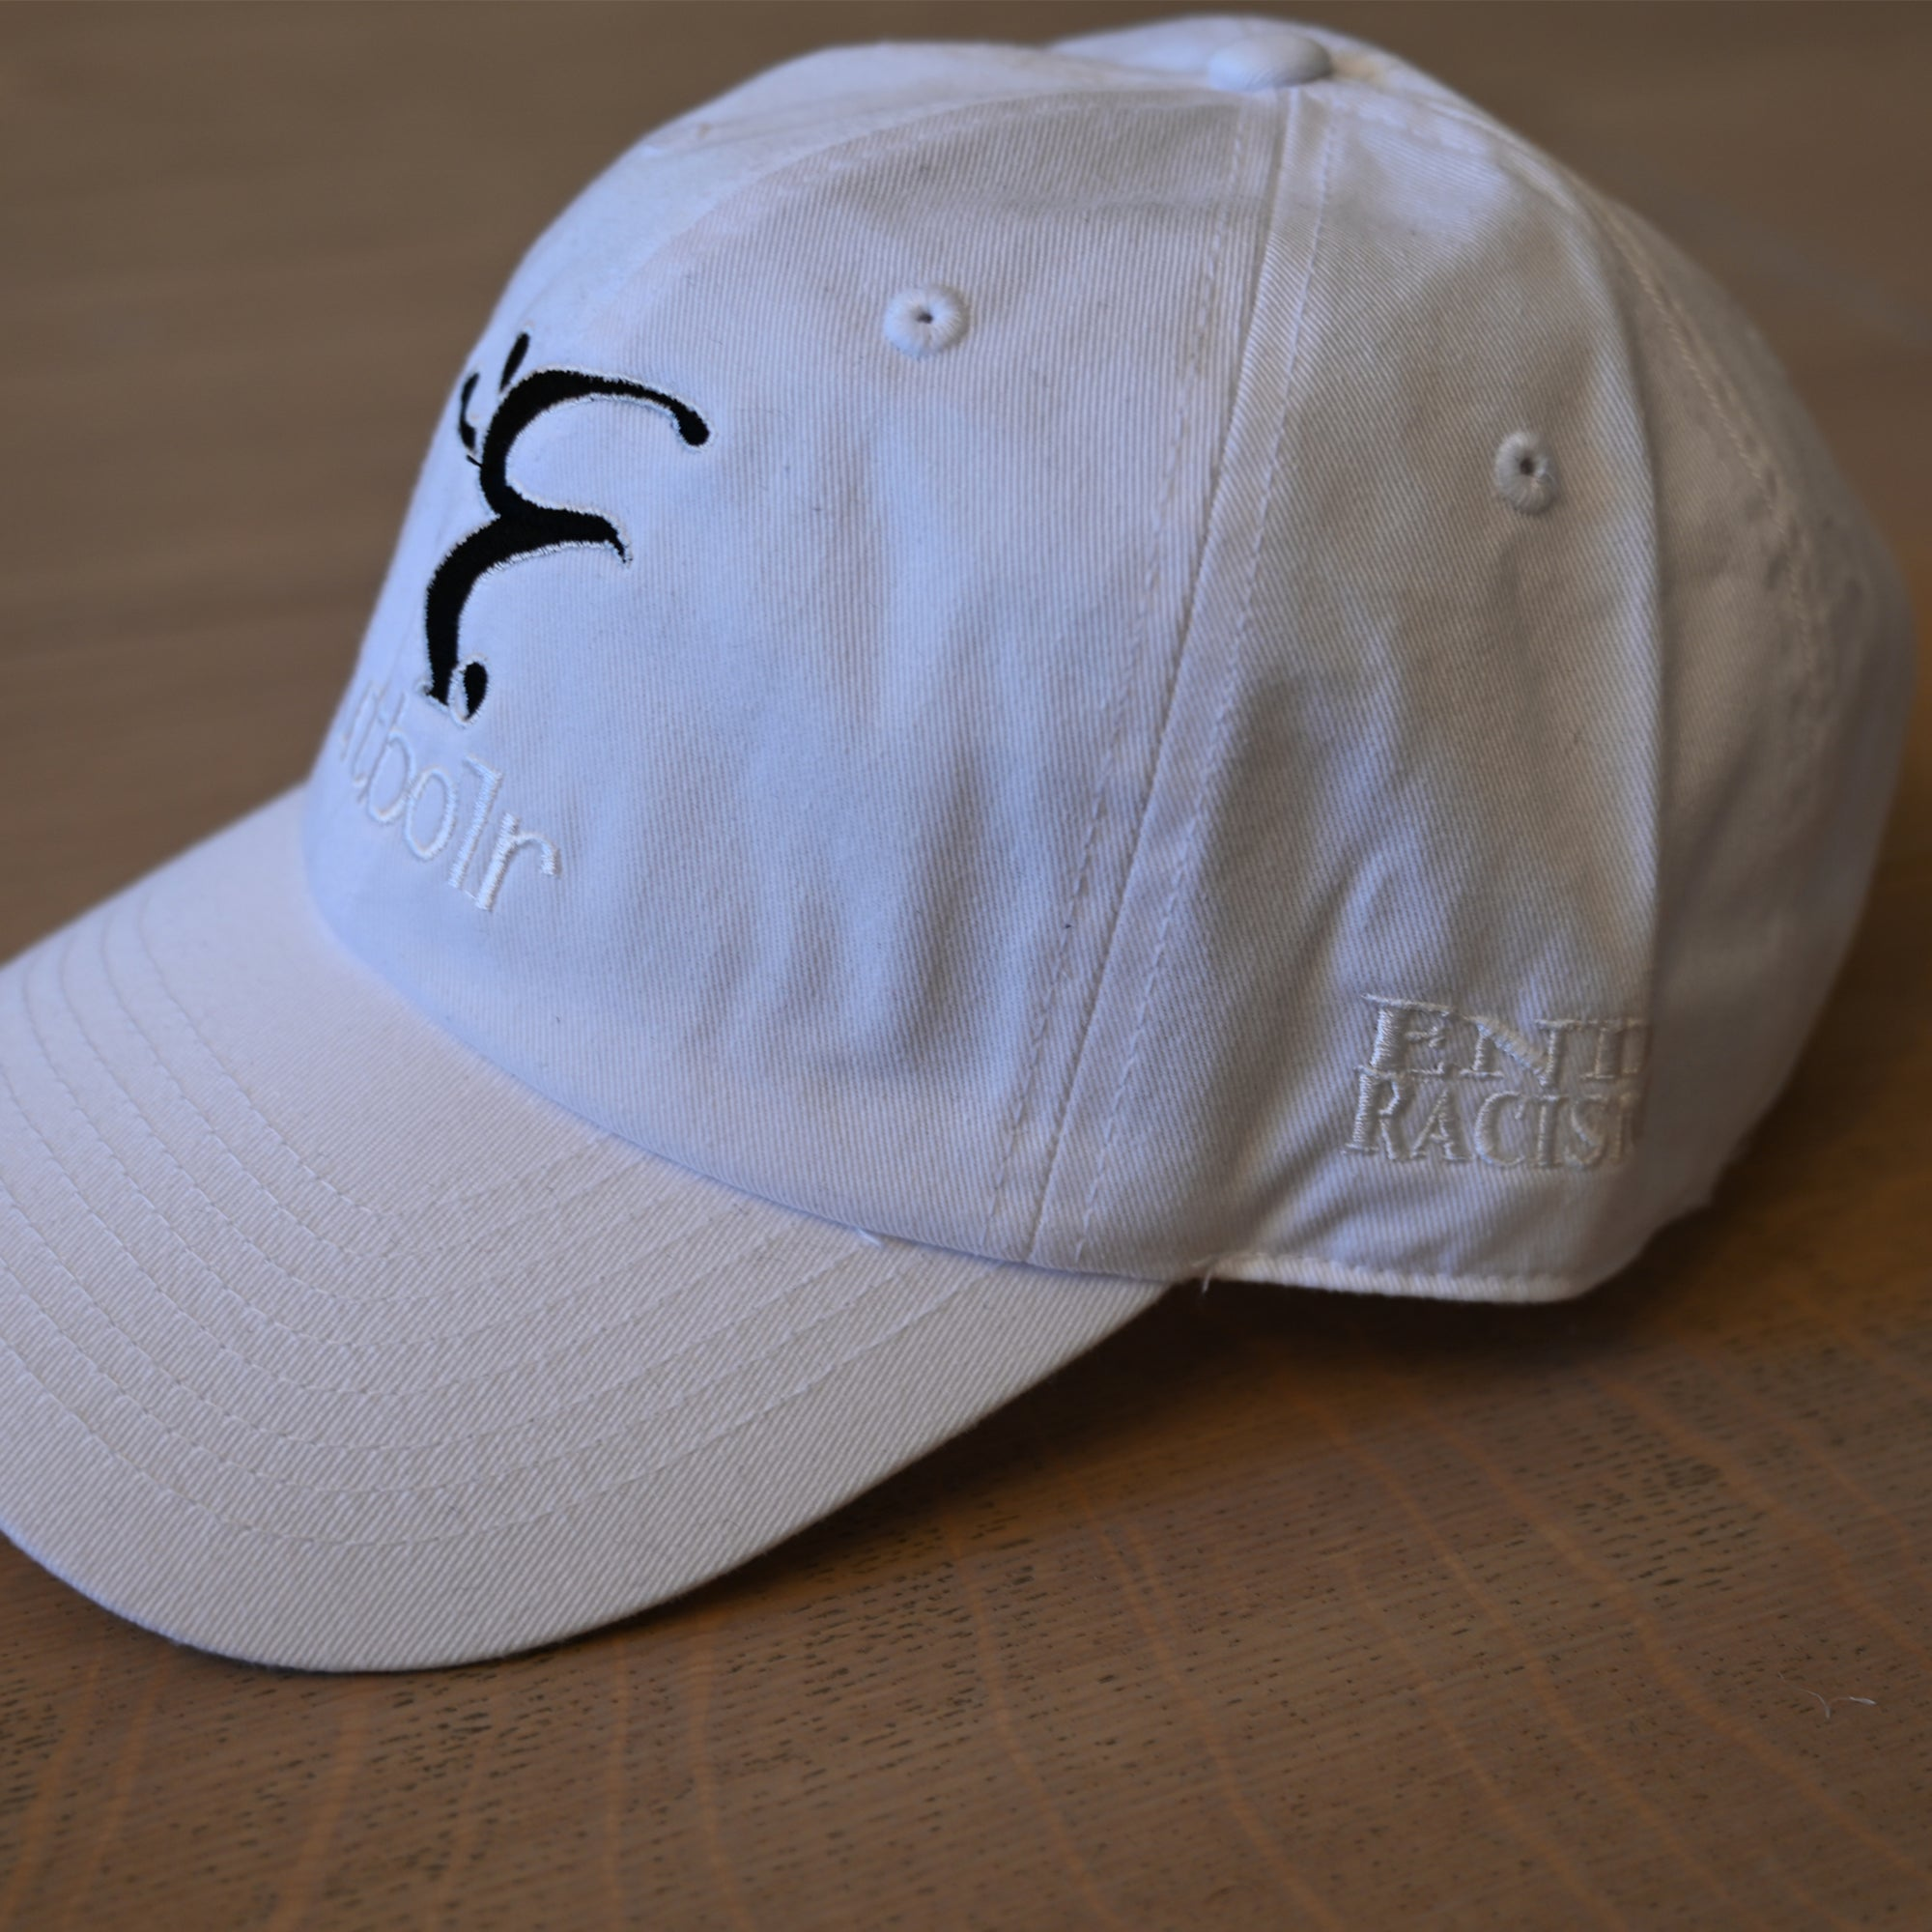 End Racism Futbolr White Dad Hat